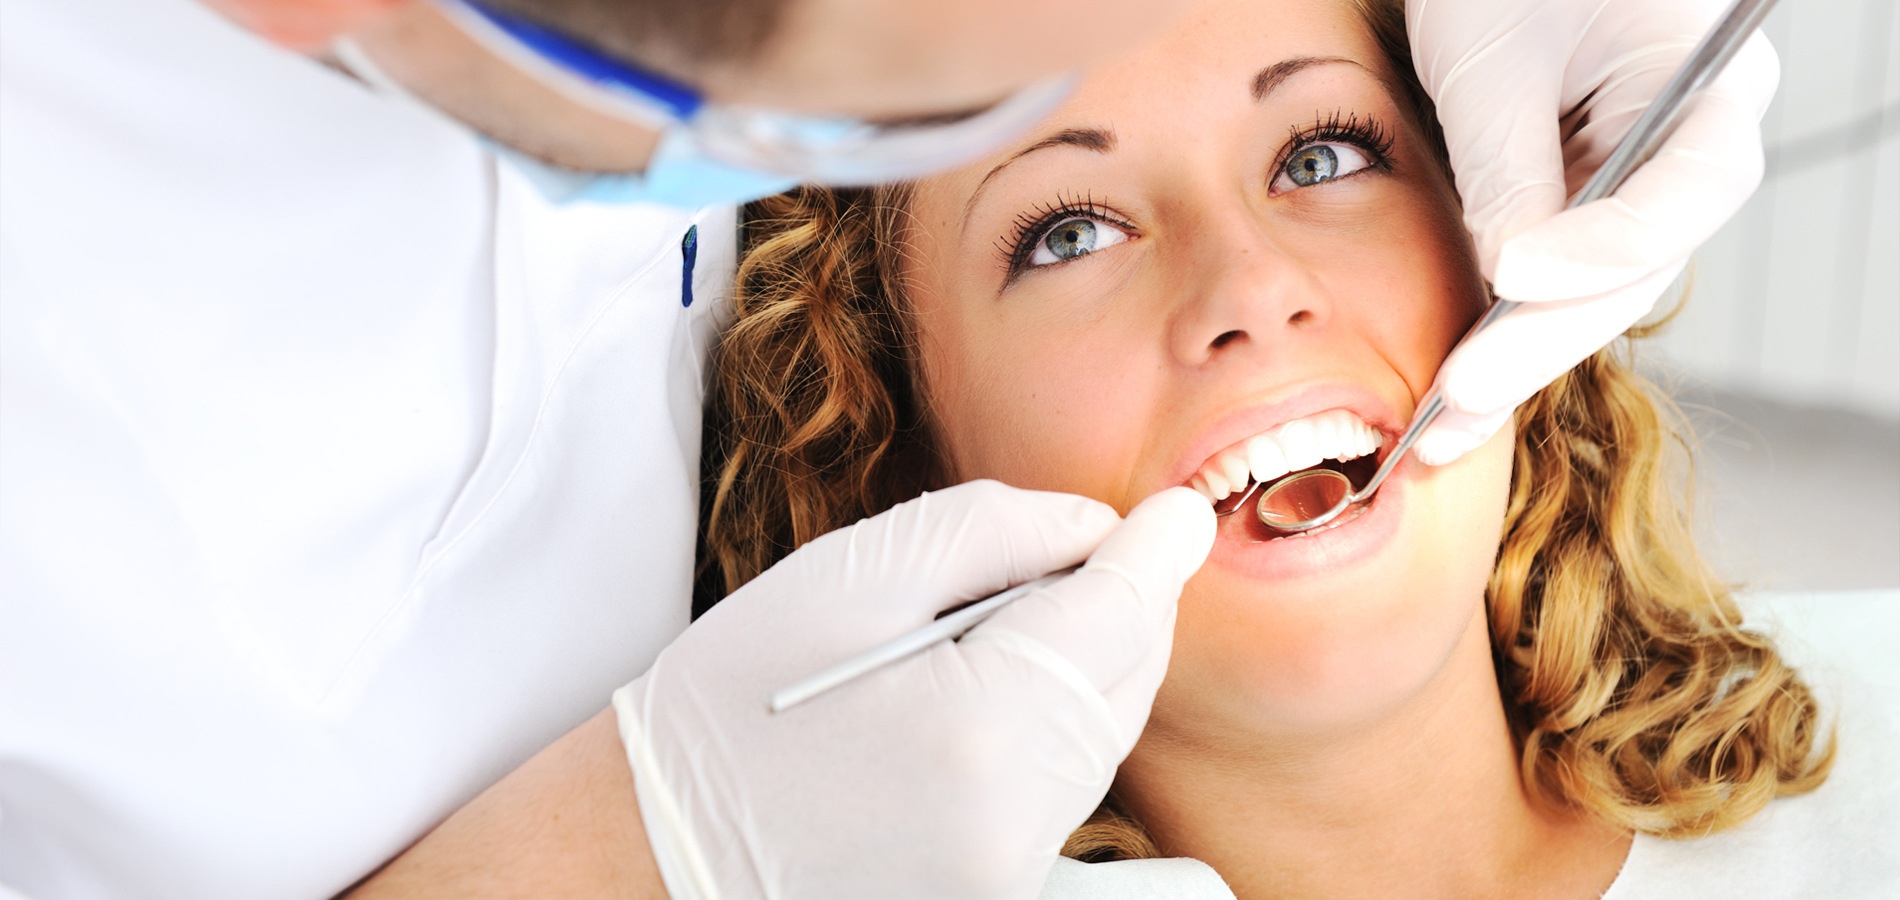 General, Cosmetic & Restorative Dentistry In Seneca, SC